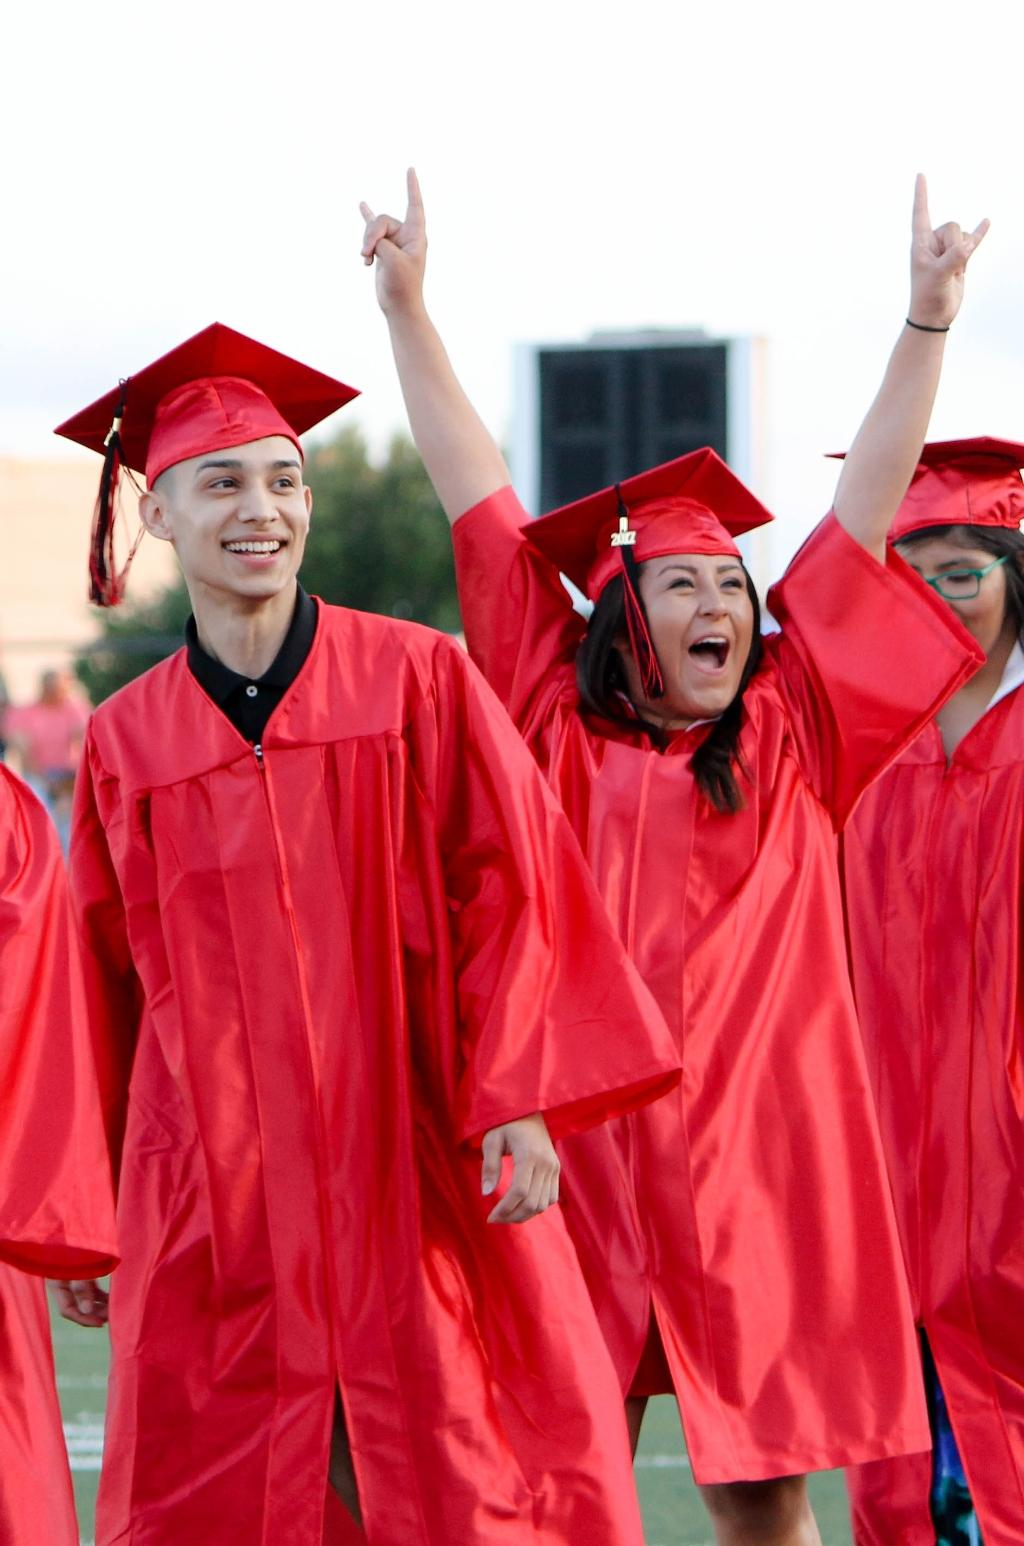 students of the victoria east high school 2018 graduating walking into memorial stadium, smiling male student and a smiling female student screaming with excitement and rockstar hands in the air